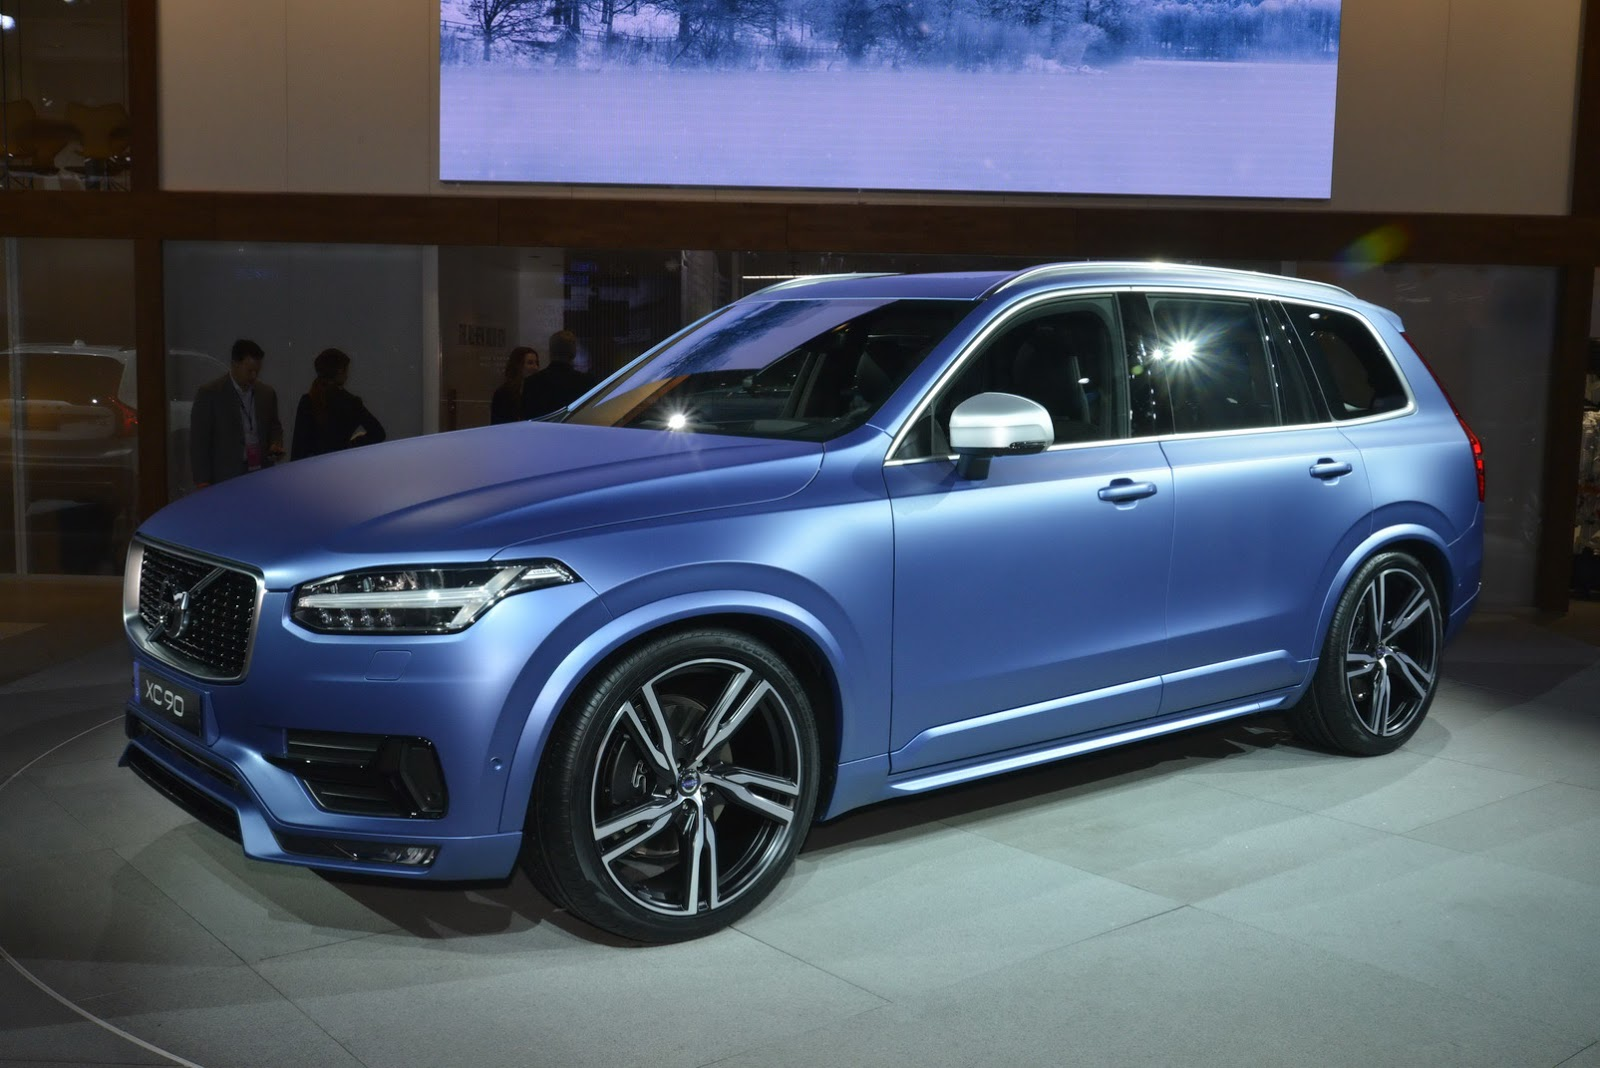 volvo 39 s 2016 xc90 r design makes north american debut in a cool matte blue shade carscoops. Black Bedroom Furniture Sets. Home Design Ideas